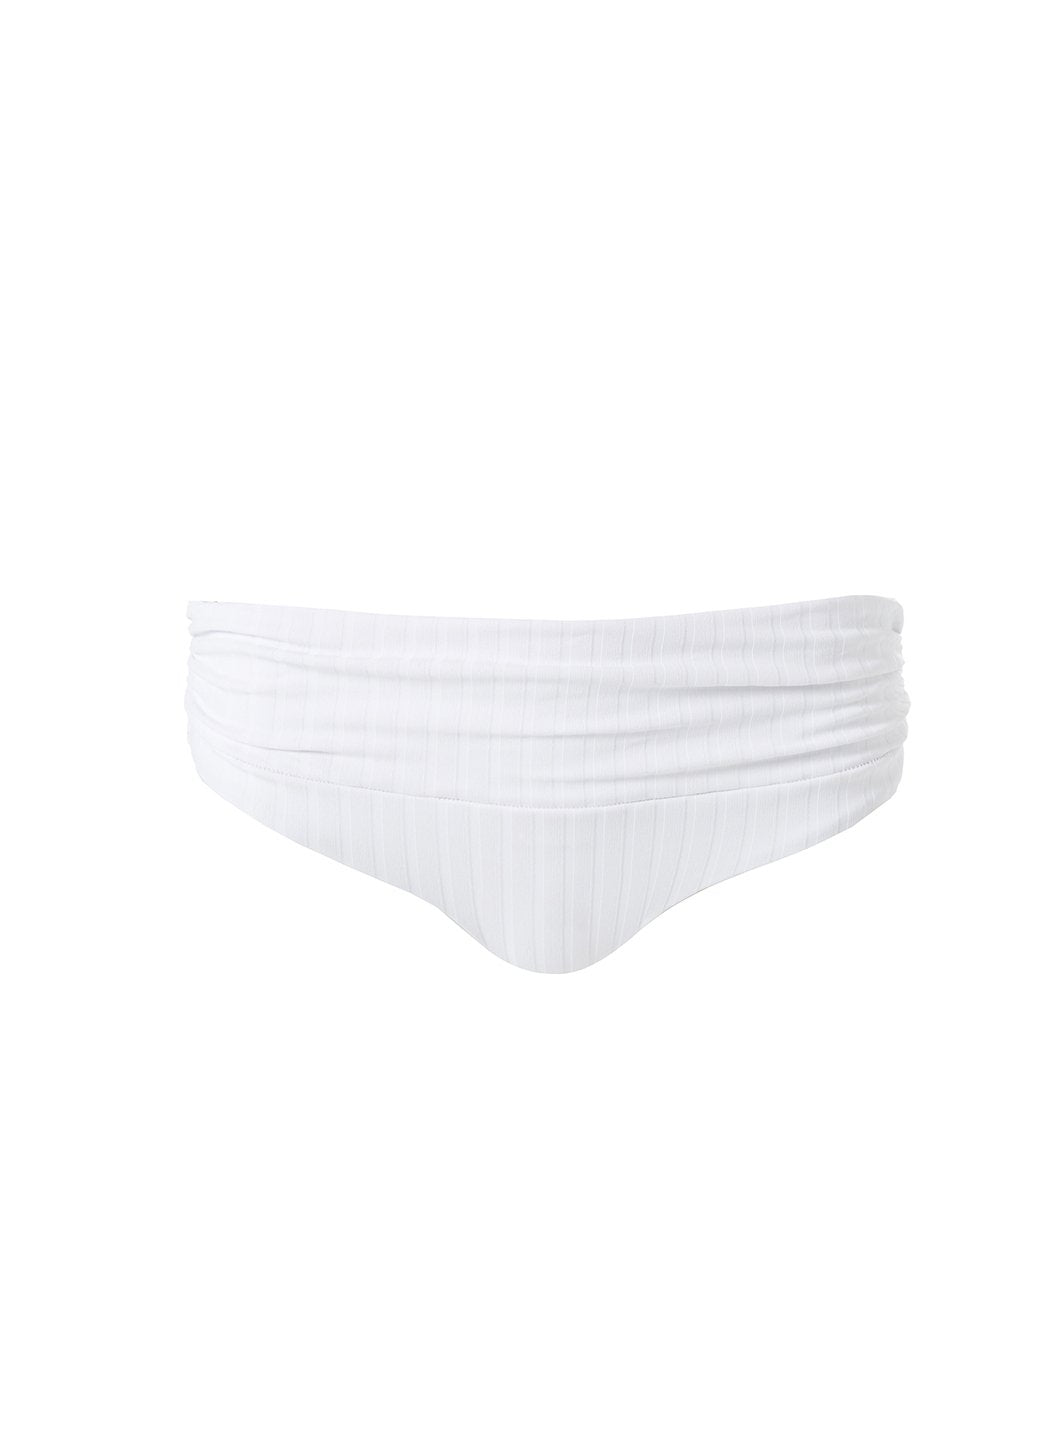 Bel Air Ribbed White Bikini Bottom